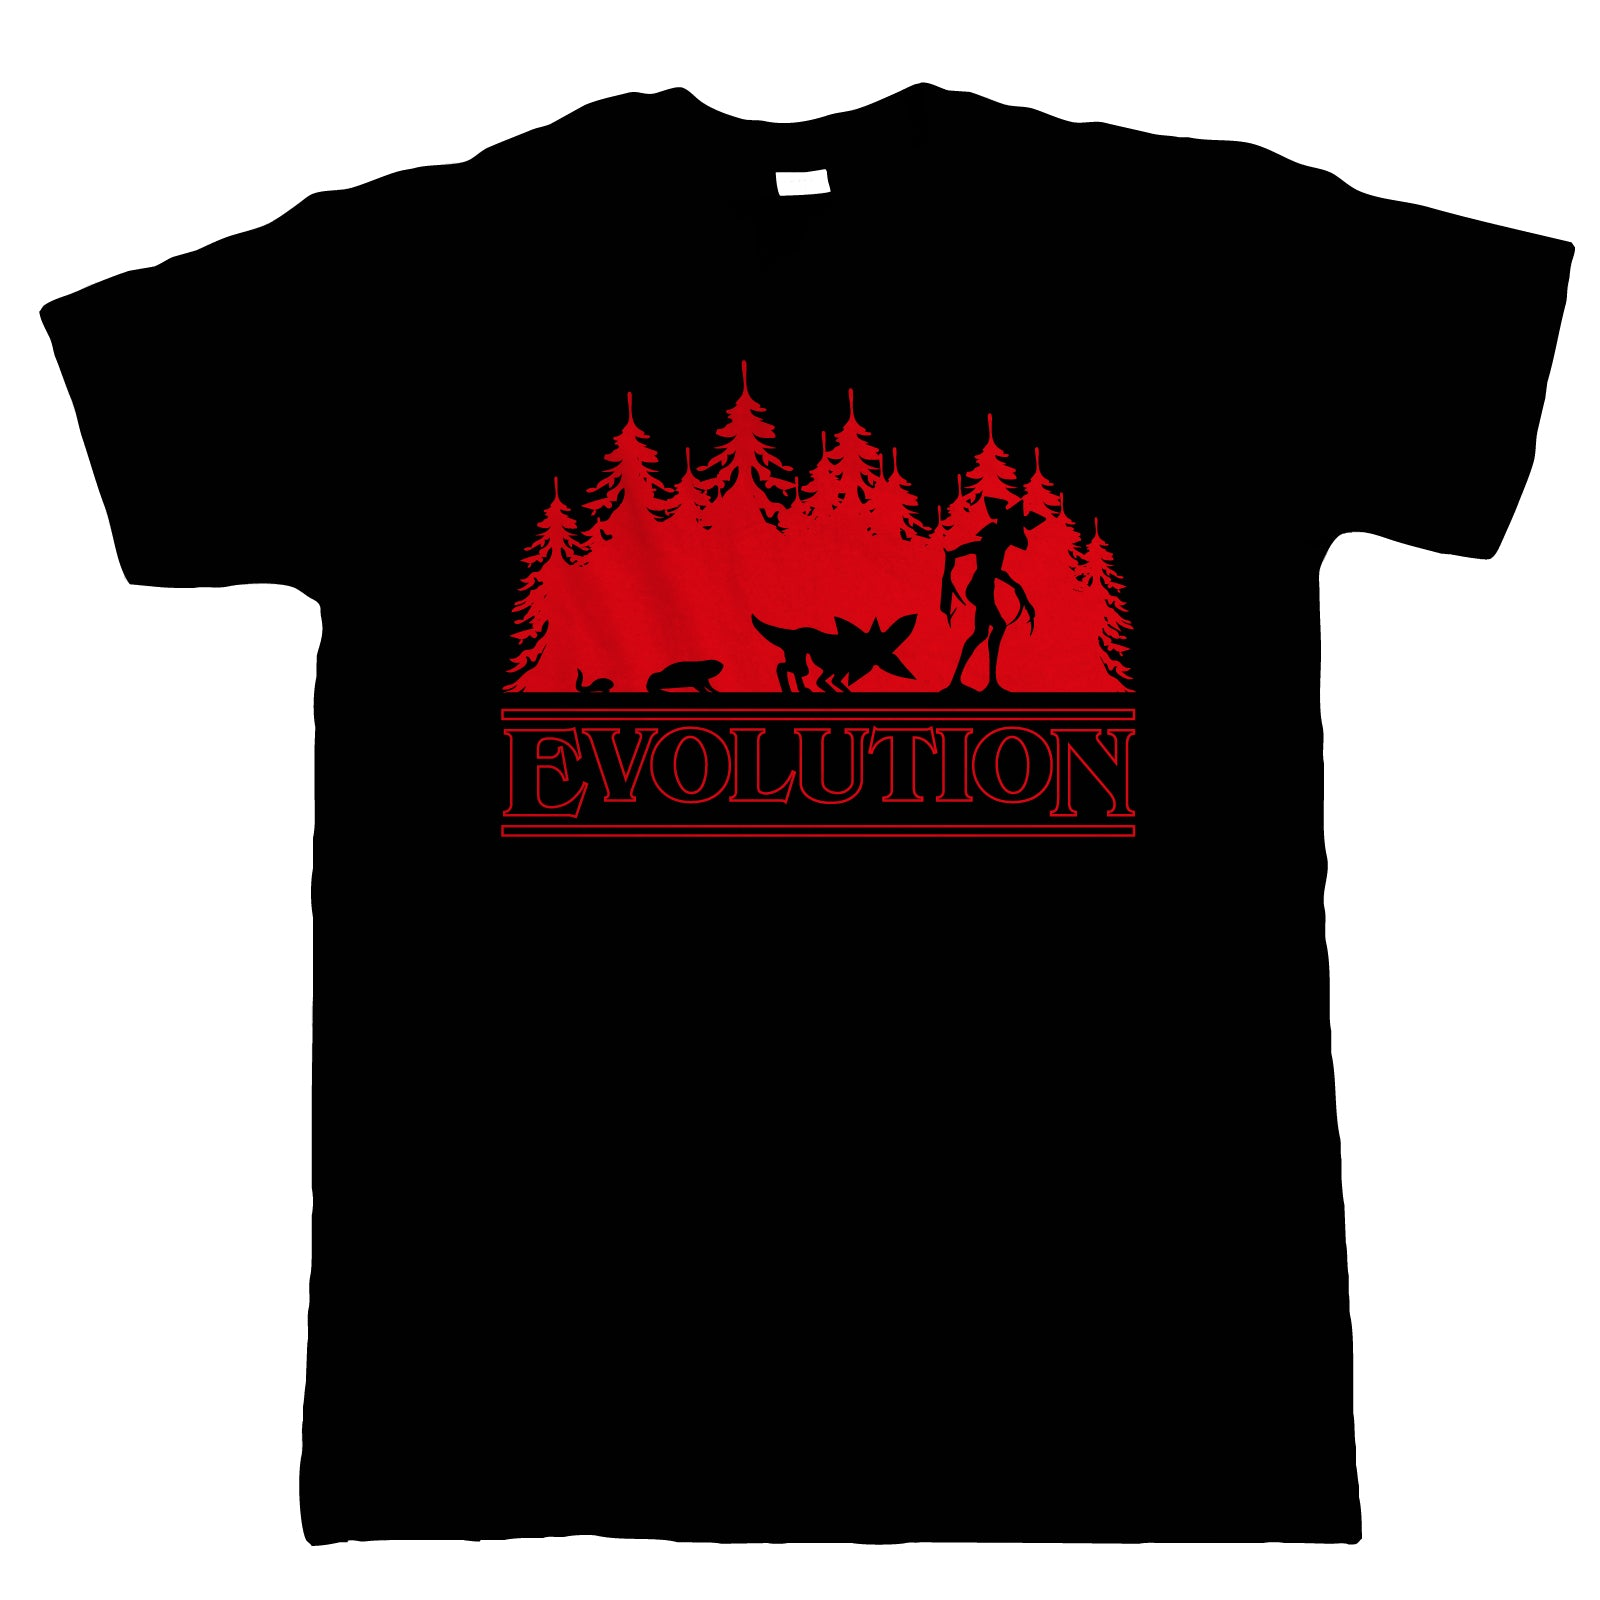 Evolution Of The Demogorgon Mens T-Shirt | Action Adventure Horror Sci-Fi Series Binge Halloween Gaming | Upside Down DND 80s Small Town Summer | TV Inspired Gift Him